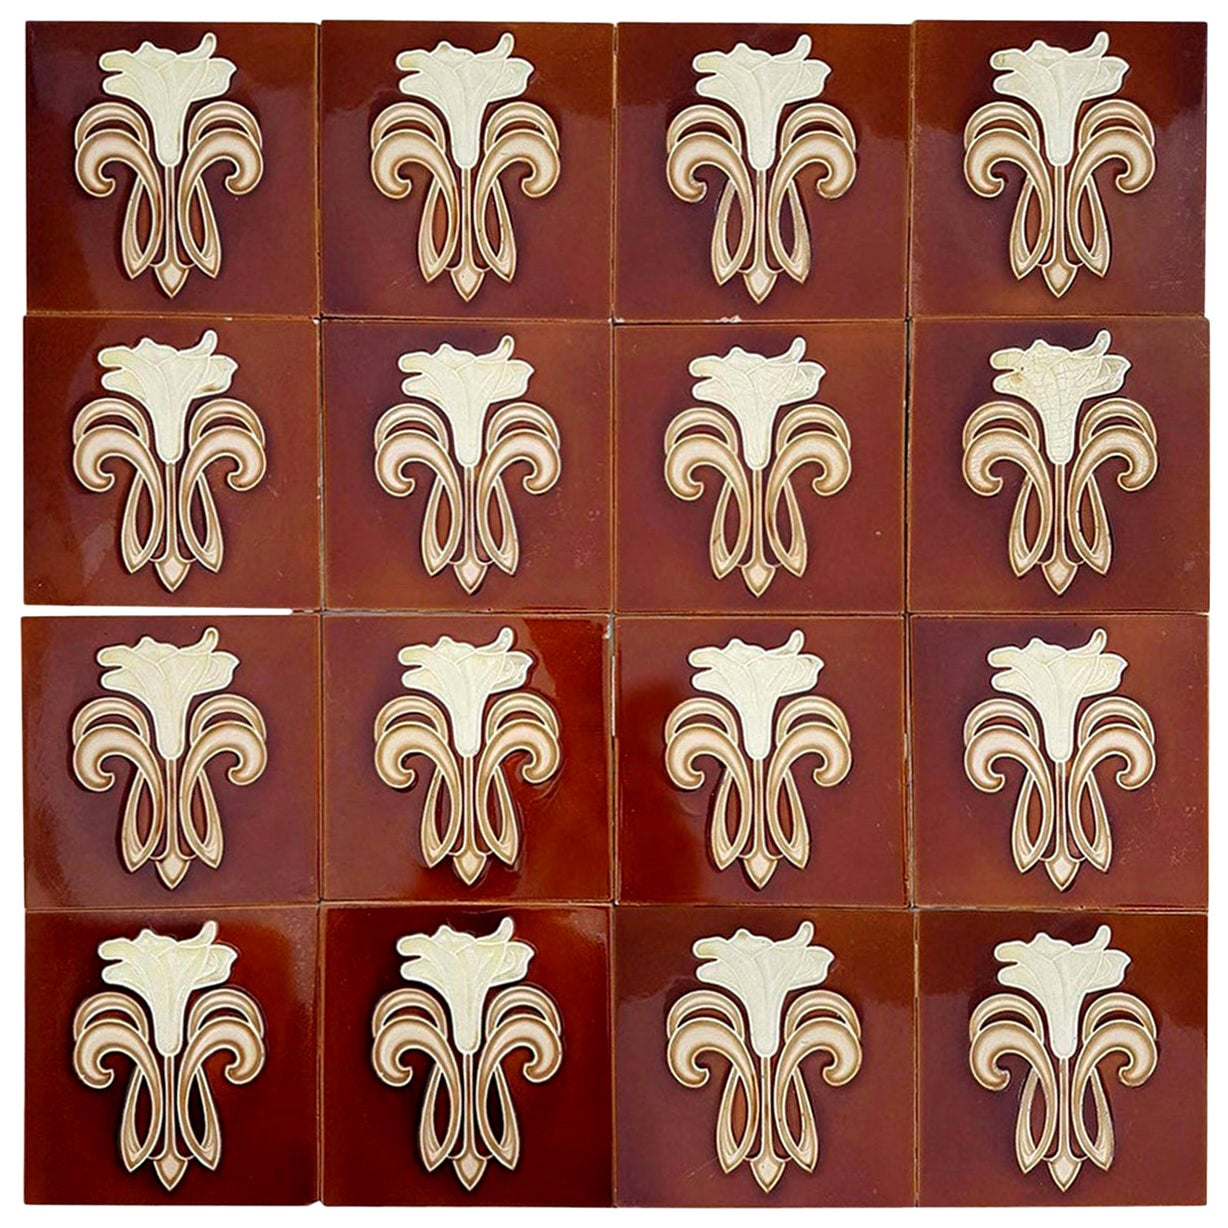 30 Art Jugendstil Ceramic Tiles by Gilliot Fabrieken Te Hemiksem, circa 1920